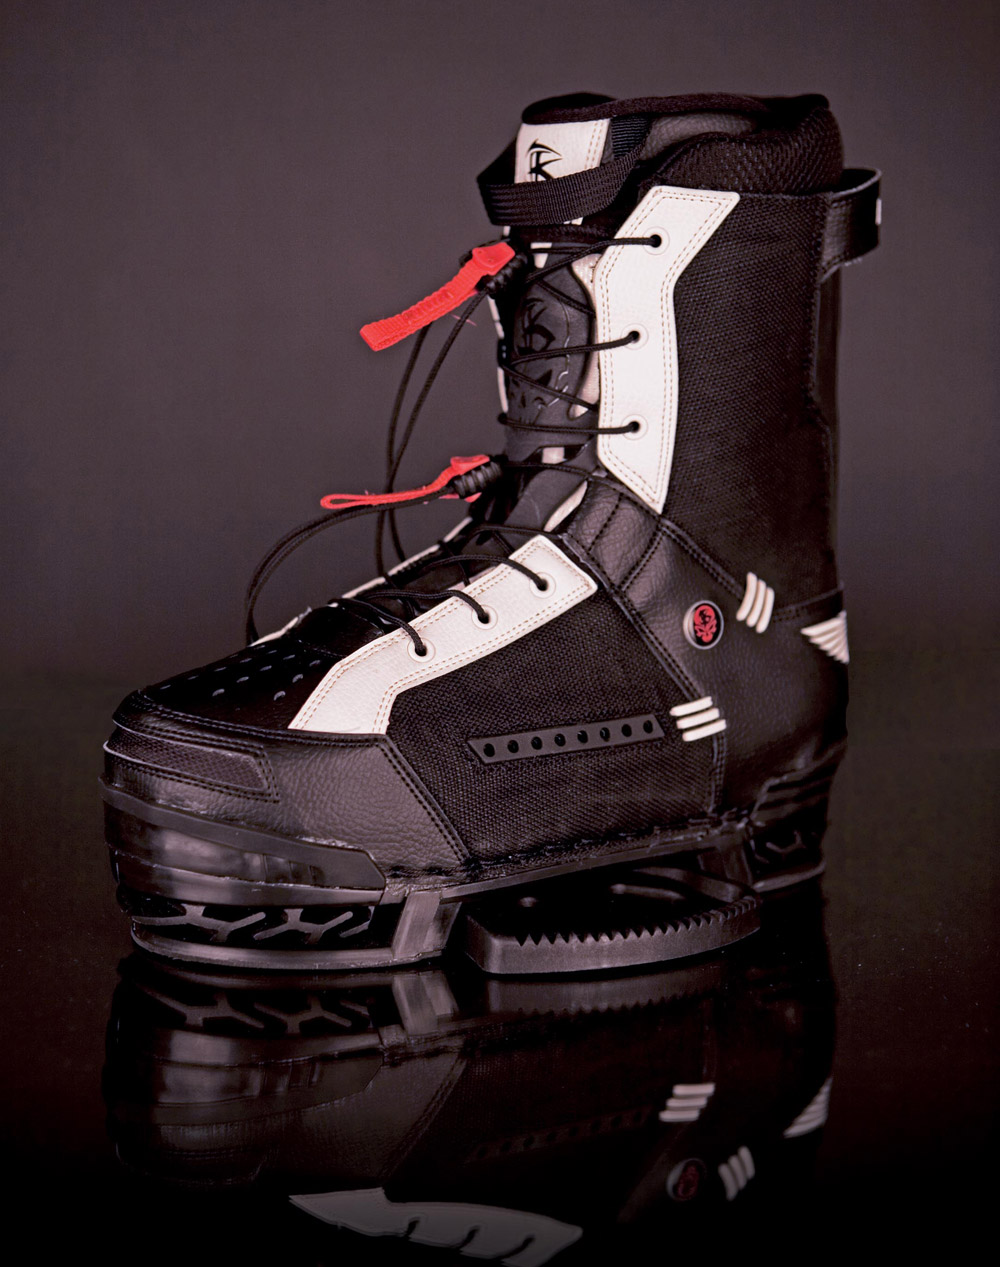 Byerly Wakeboard boot